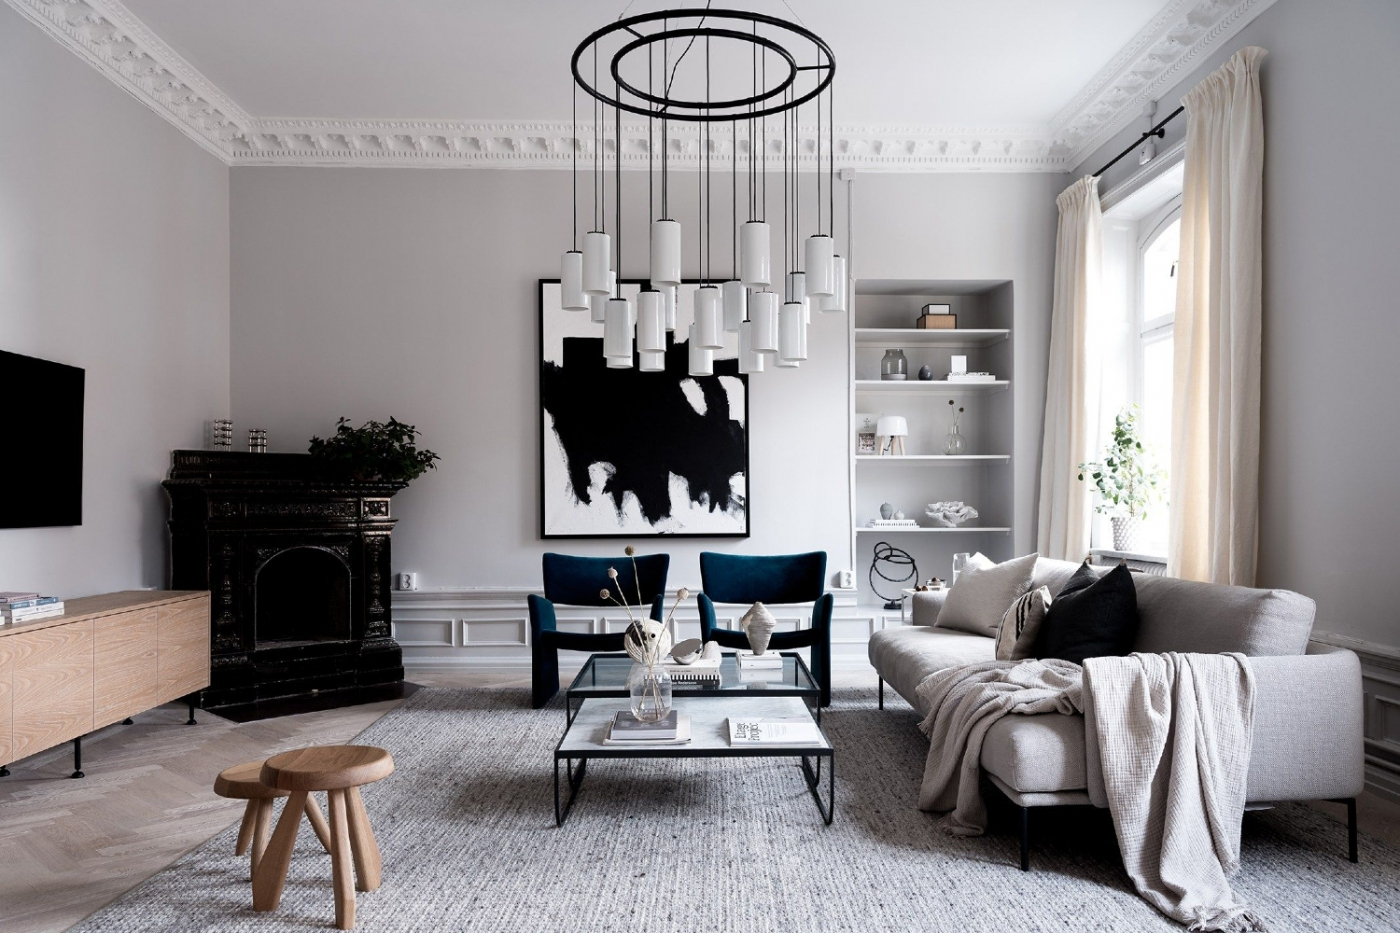 top interior designers Design Hubs Of The World – 15 Top Interior Designers From Stockholm Design Hubs Of The World     15 Top Interior Designers From Brussels feature image 1 1400x933